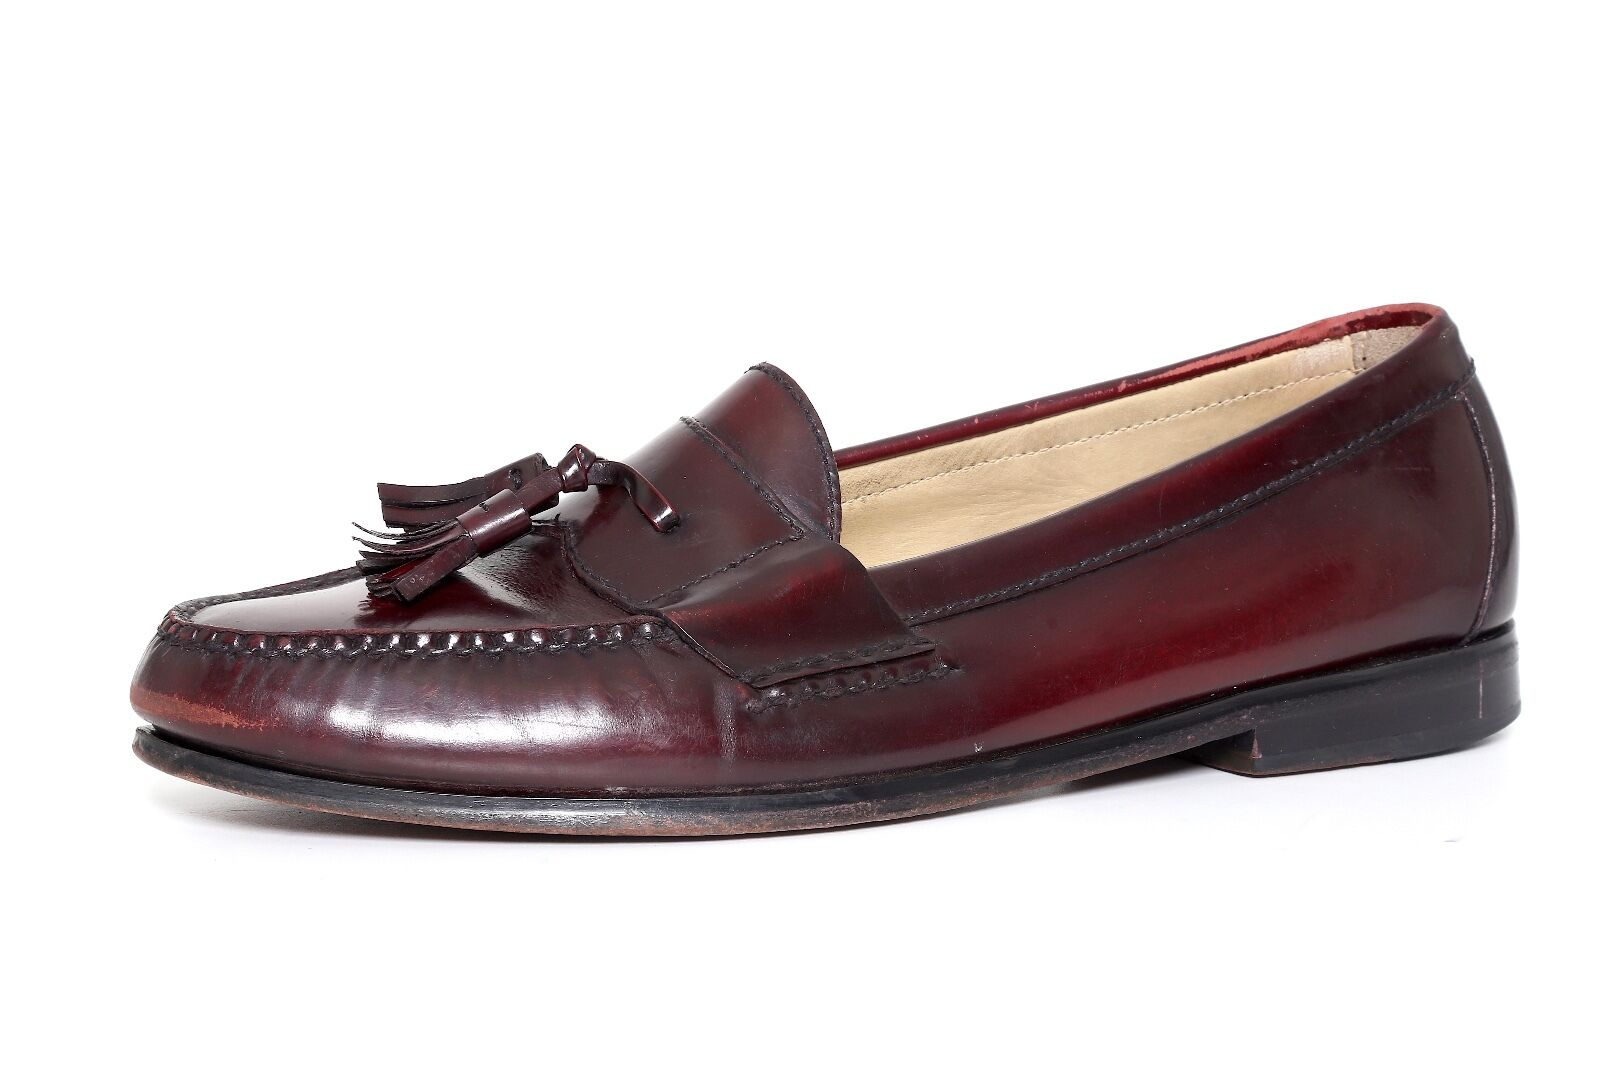 Cole Haan Men's Pinch Tassel Leather Loafers Burgundy 4648 Sz 10 M